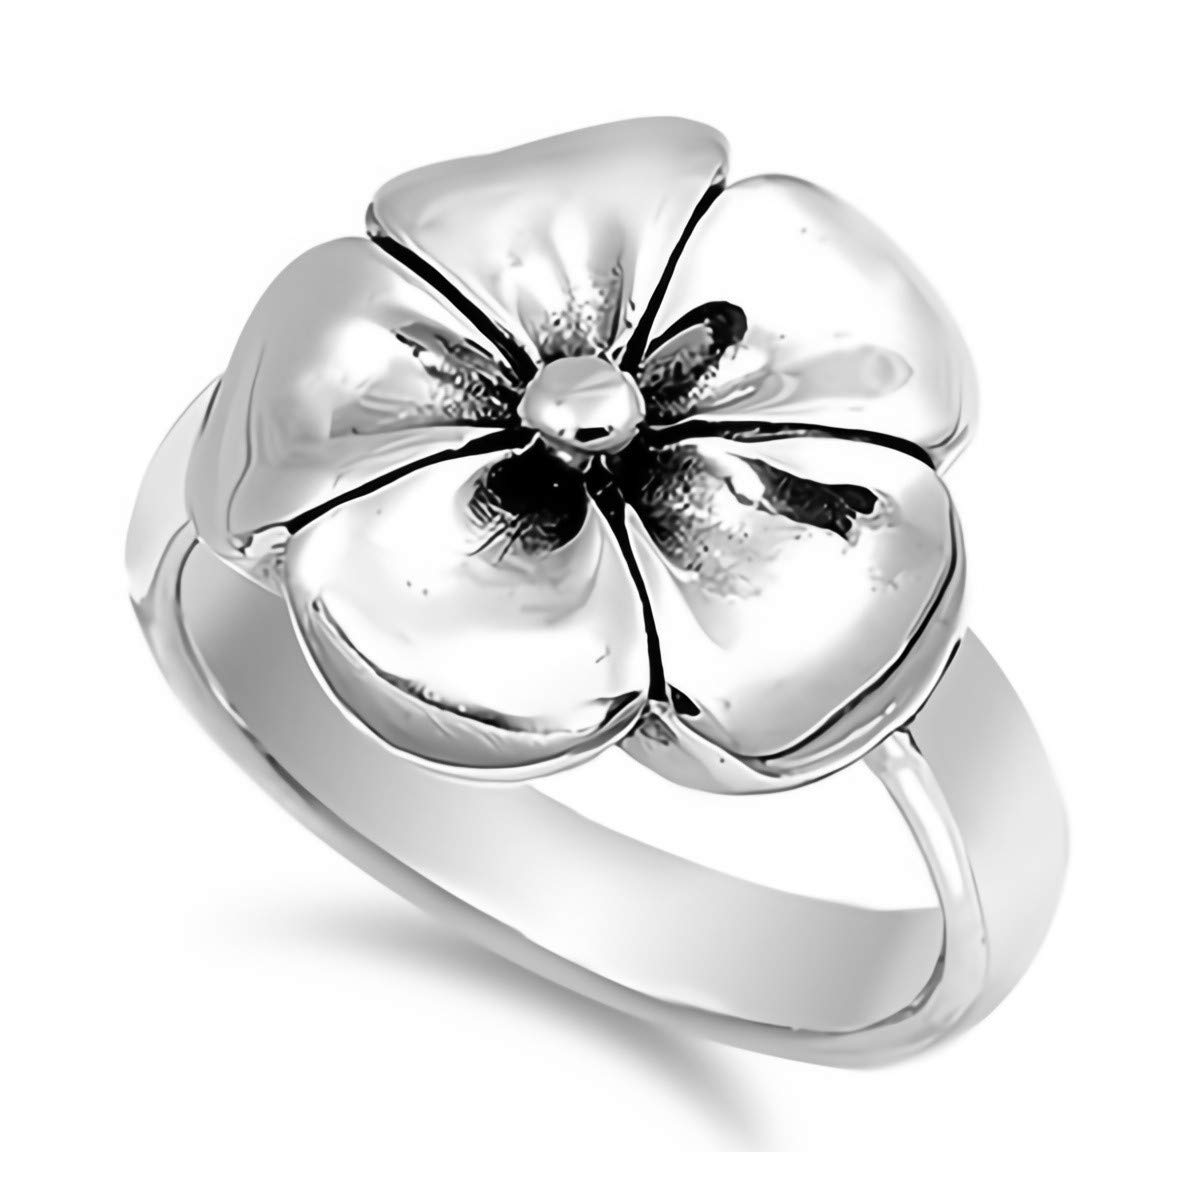 Cute Jewelry Gift for Women in Gift Box Glitzs Jewels 925 Sterling Silver Ring Flower